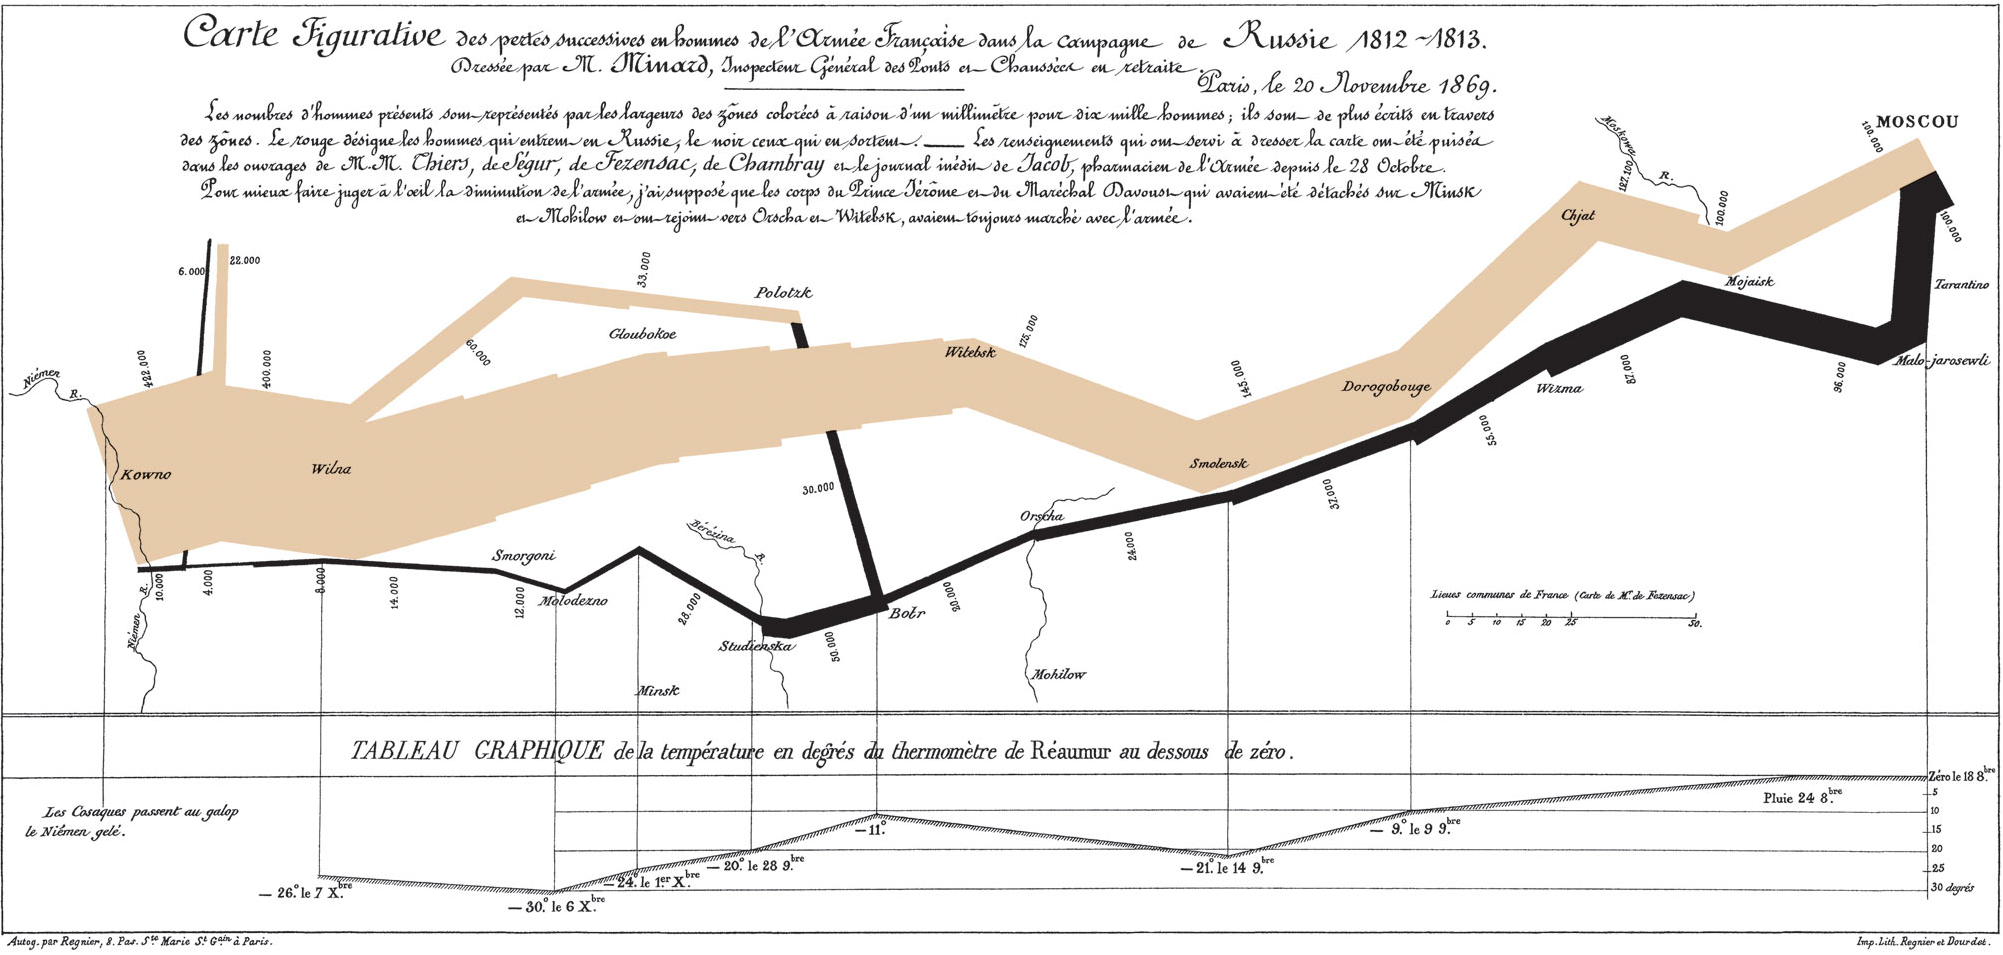 Charles Minard's Map of Napoleon's Russian Campaign of 1812